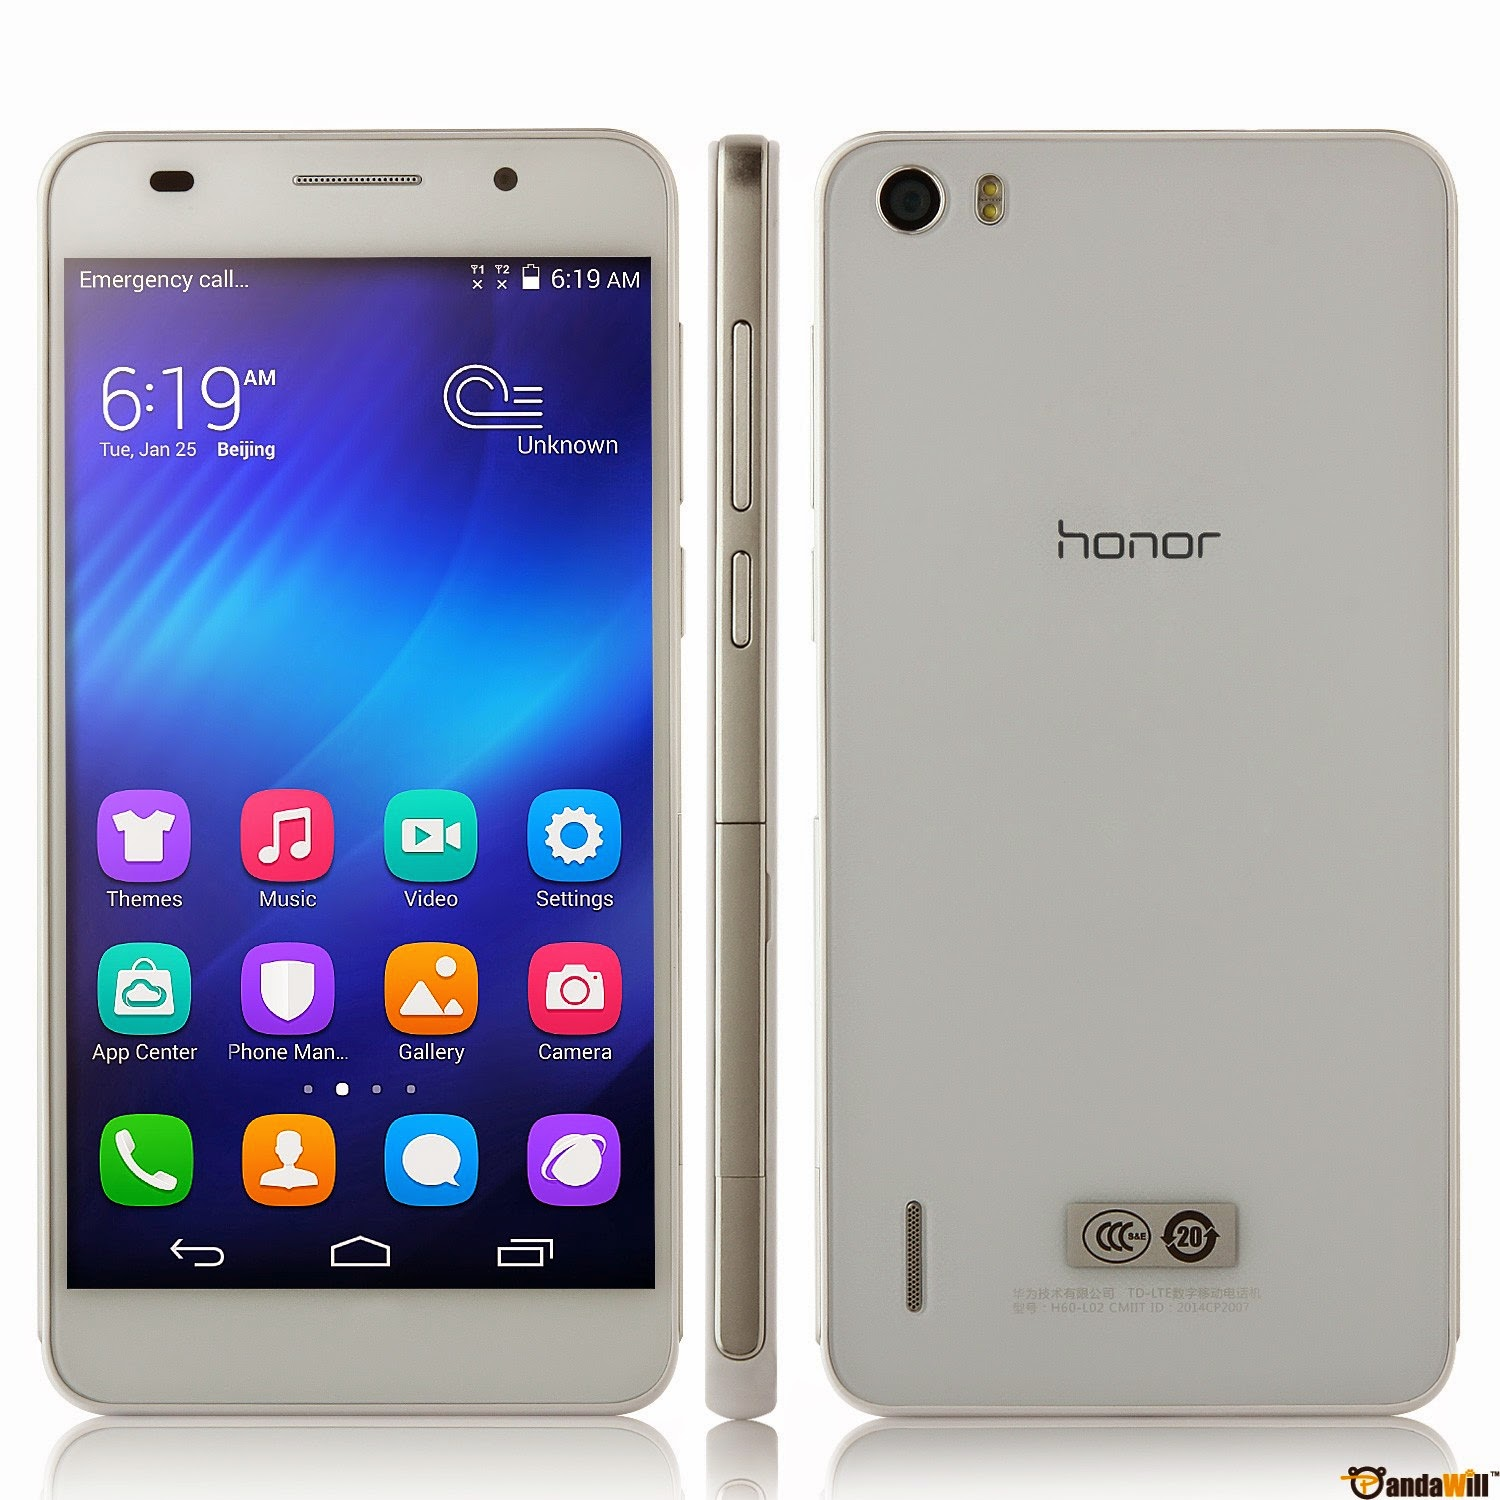 Huawei Honor 6, 4G LTE, Android smartphone, new Android smartphone, Full HD video, Wi-Fi